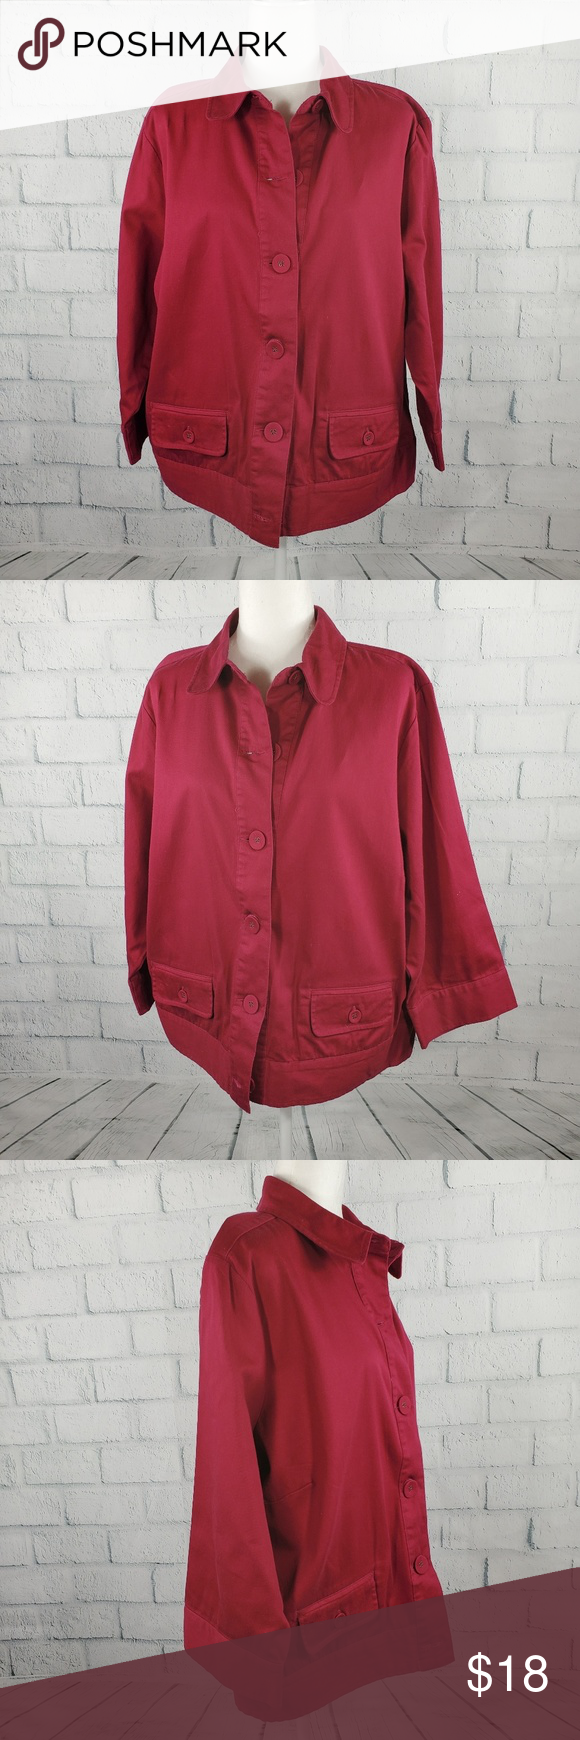 Architect Burgundy plus size button down jacket